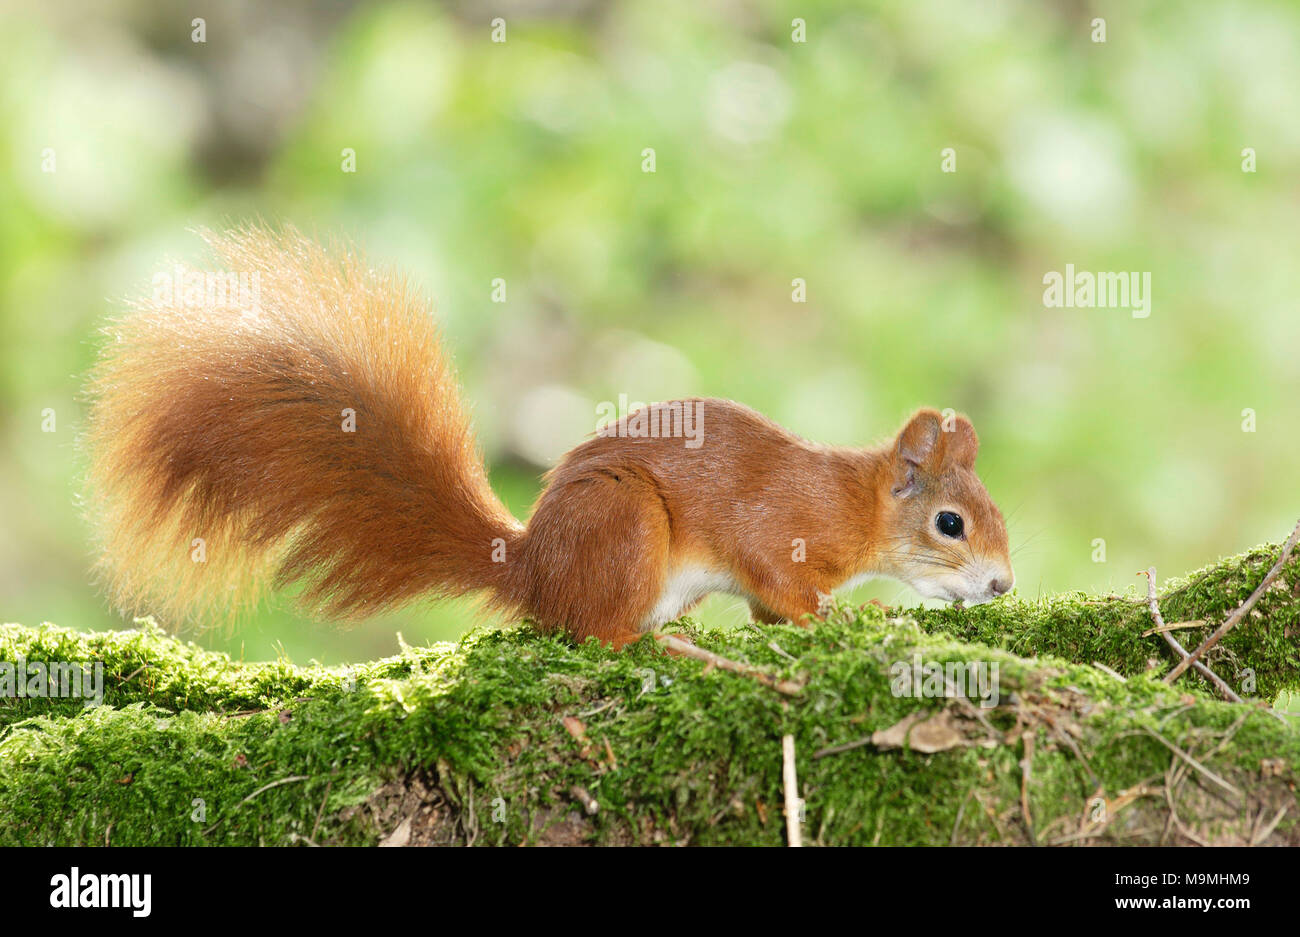 Red Squirrel (Sciurus vulgaris). Adult on a mossy log. Germany - Stock Image